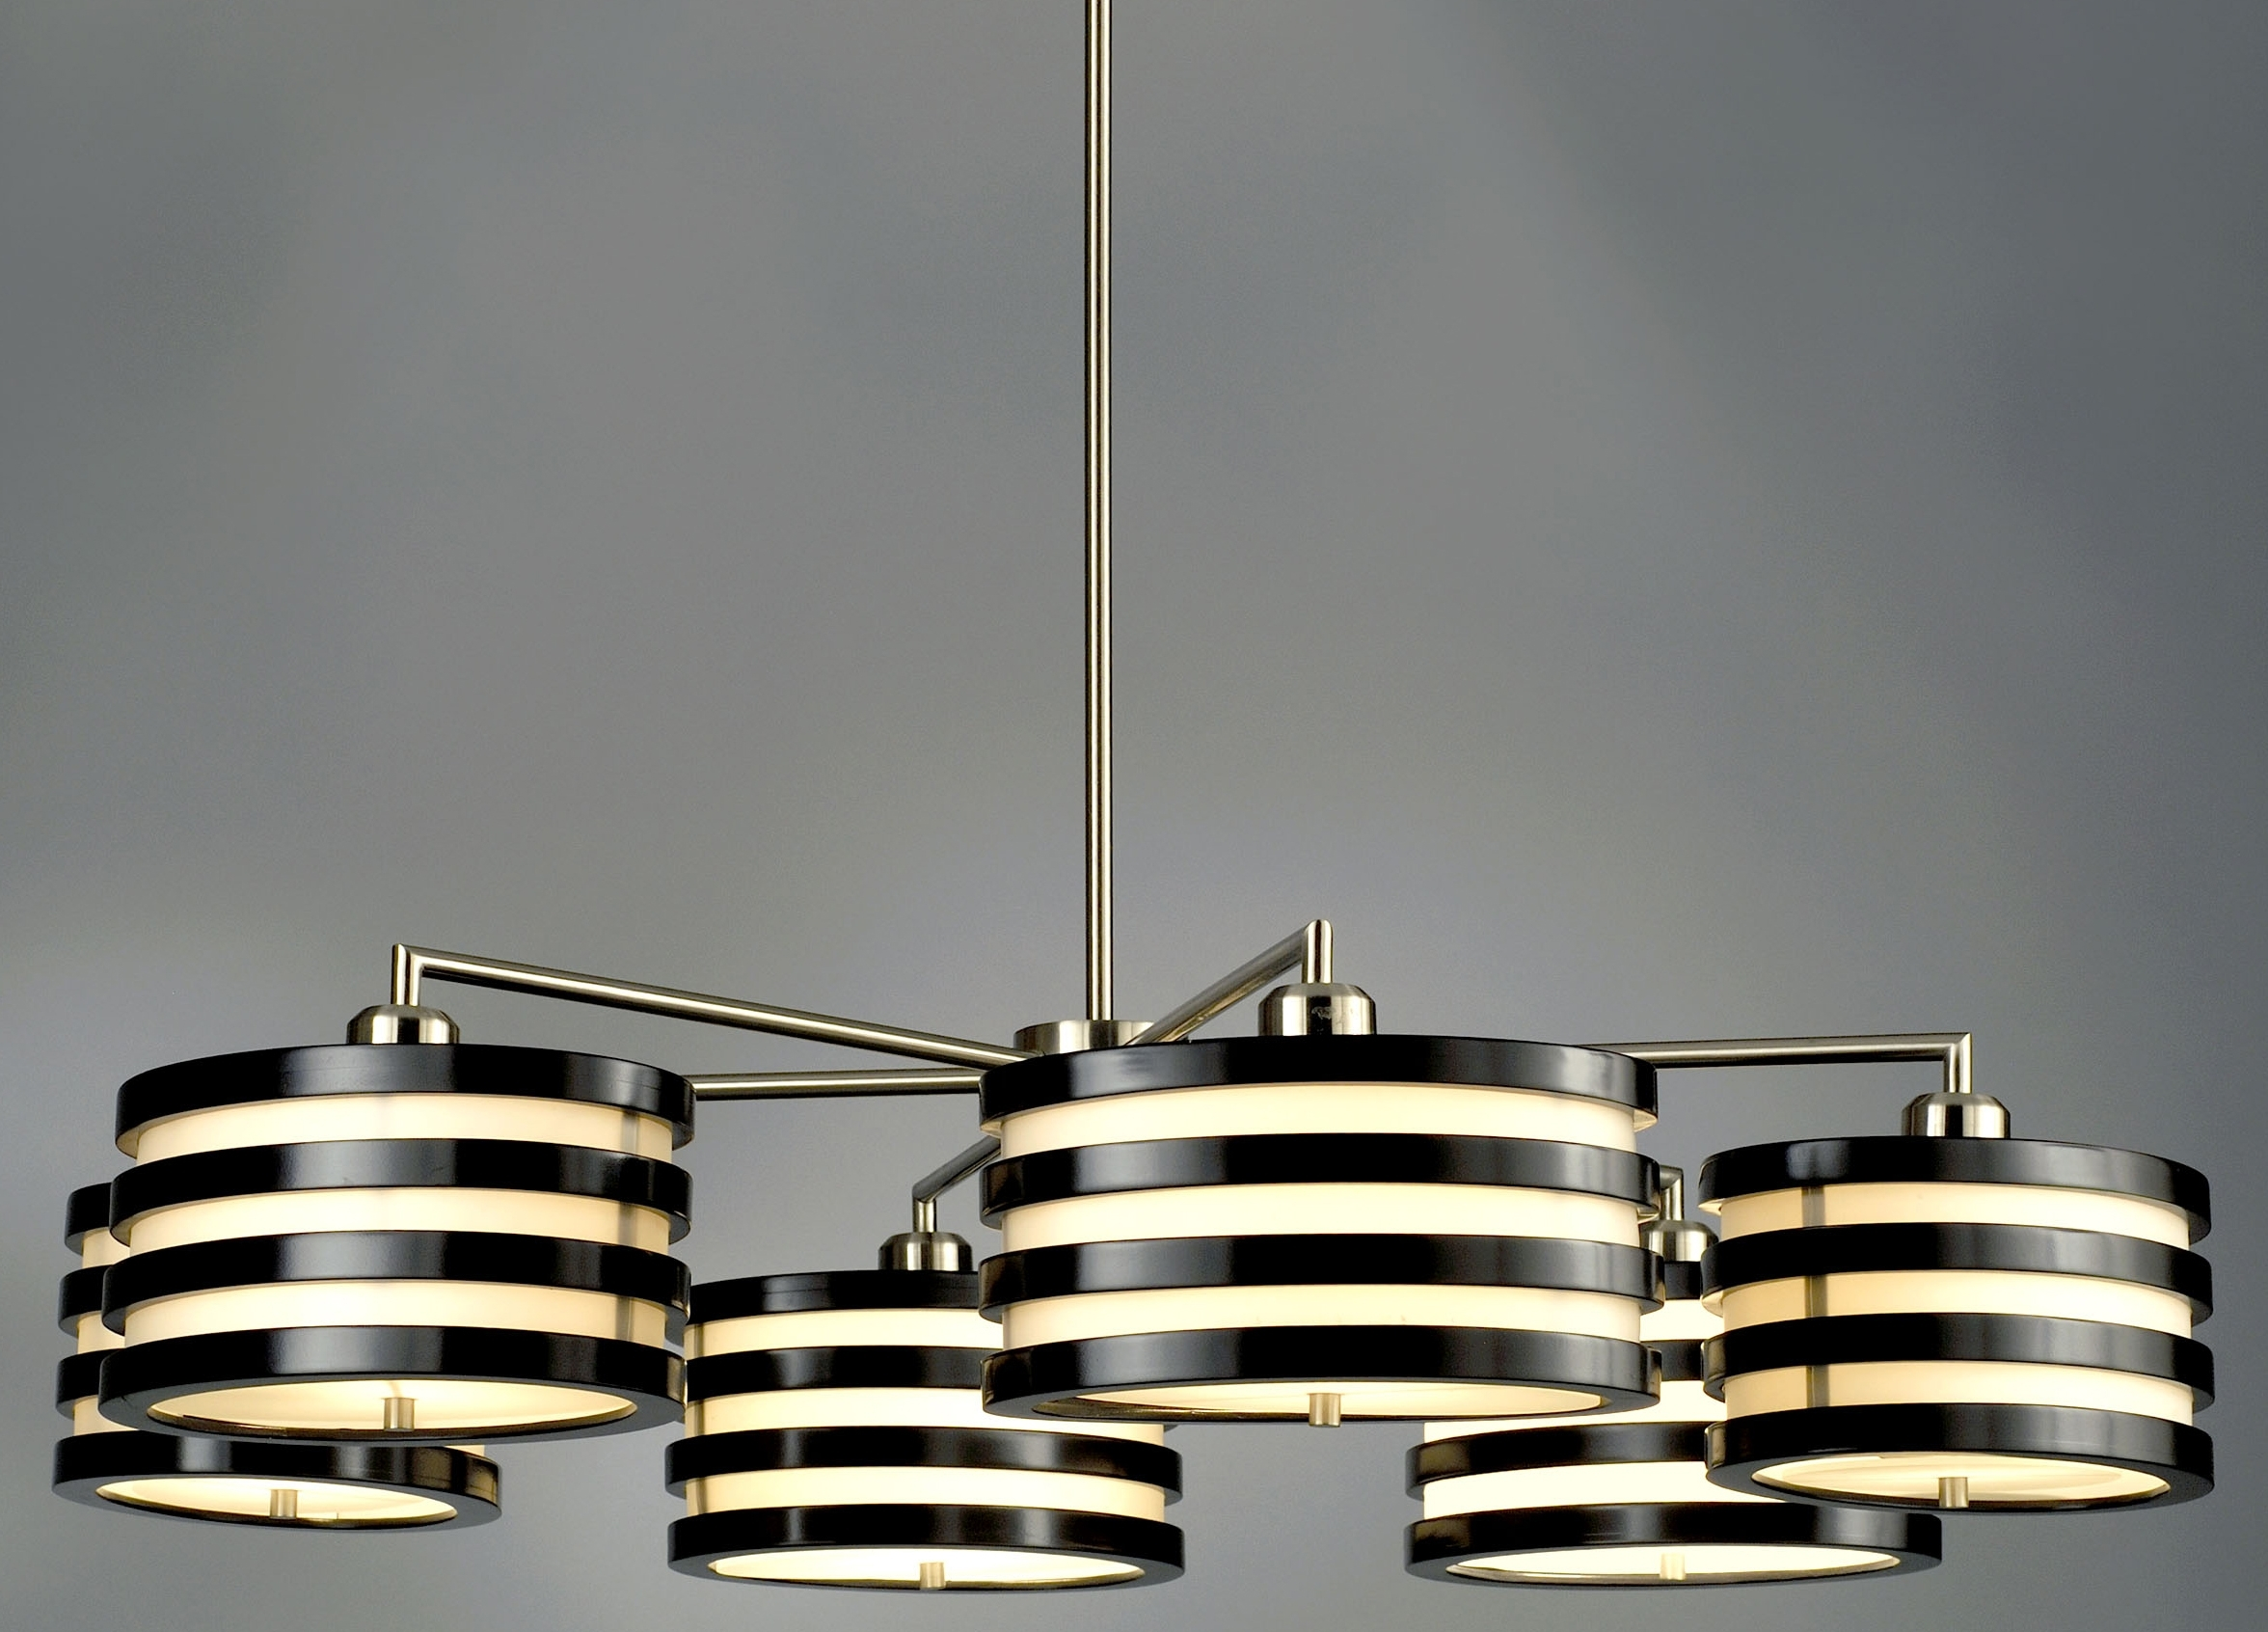 Most Recently Released Contemporary Modern Chandeliers In Home Decor + Home Lighting Blog » Blog Archive » Nova Lighting Kobe (View 7 of 15)